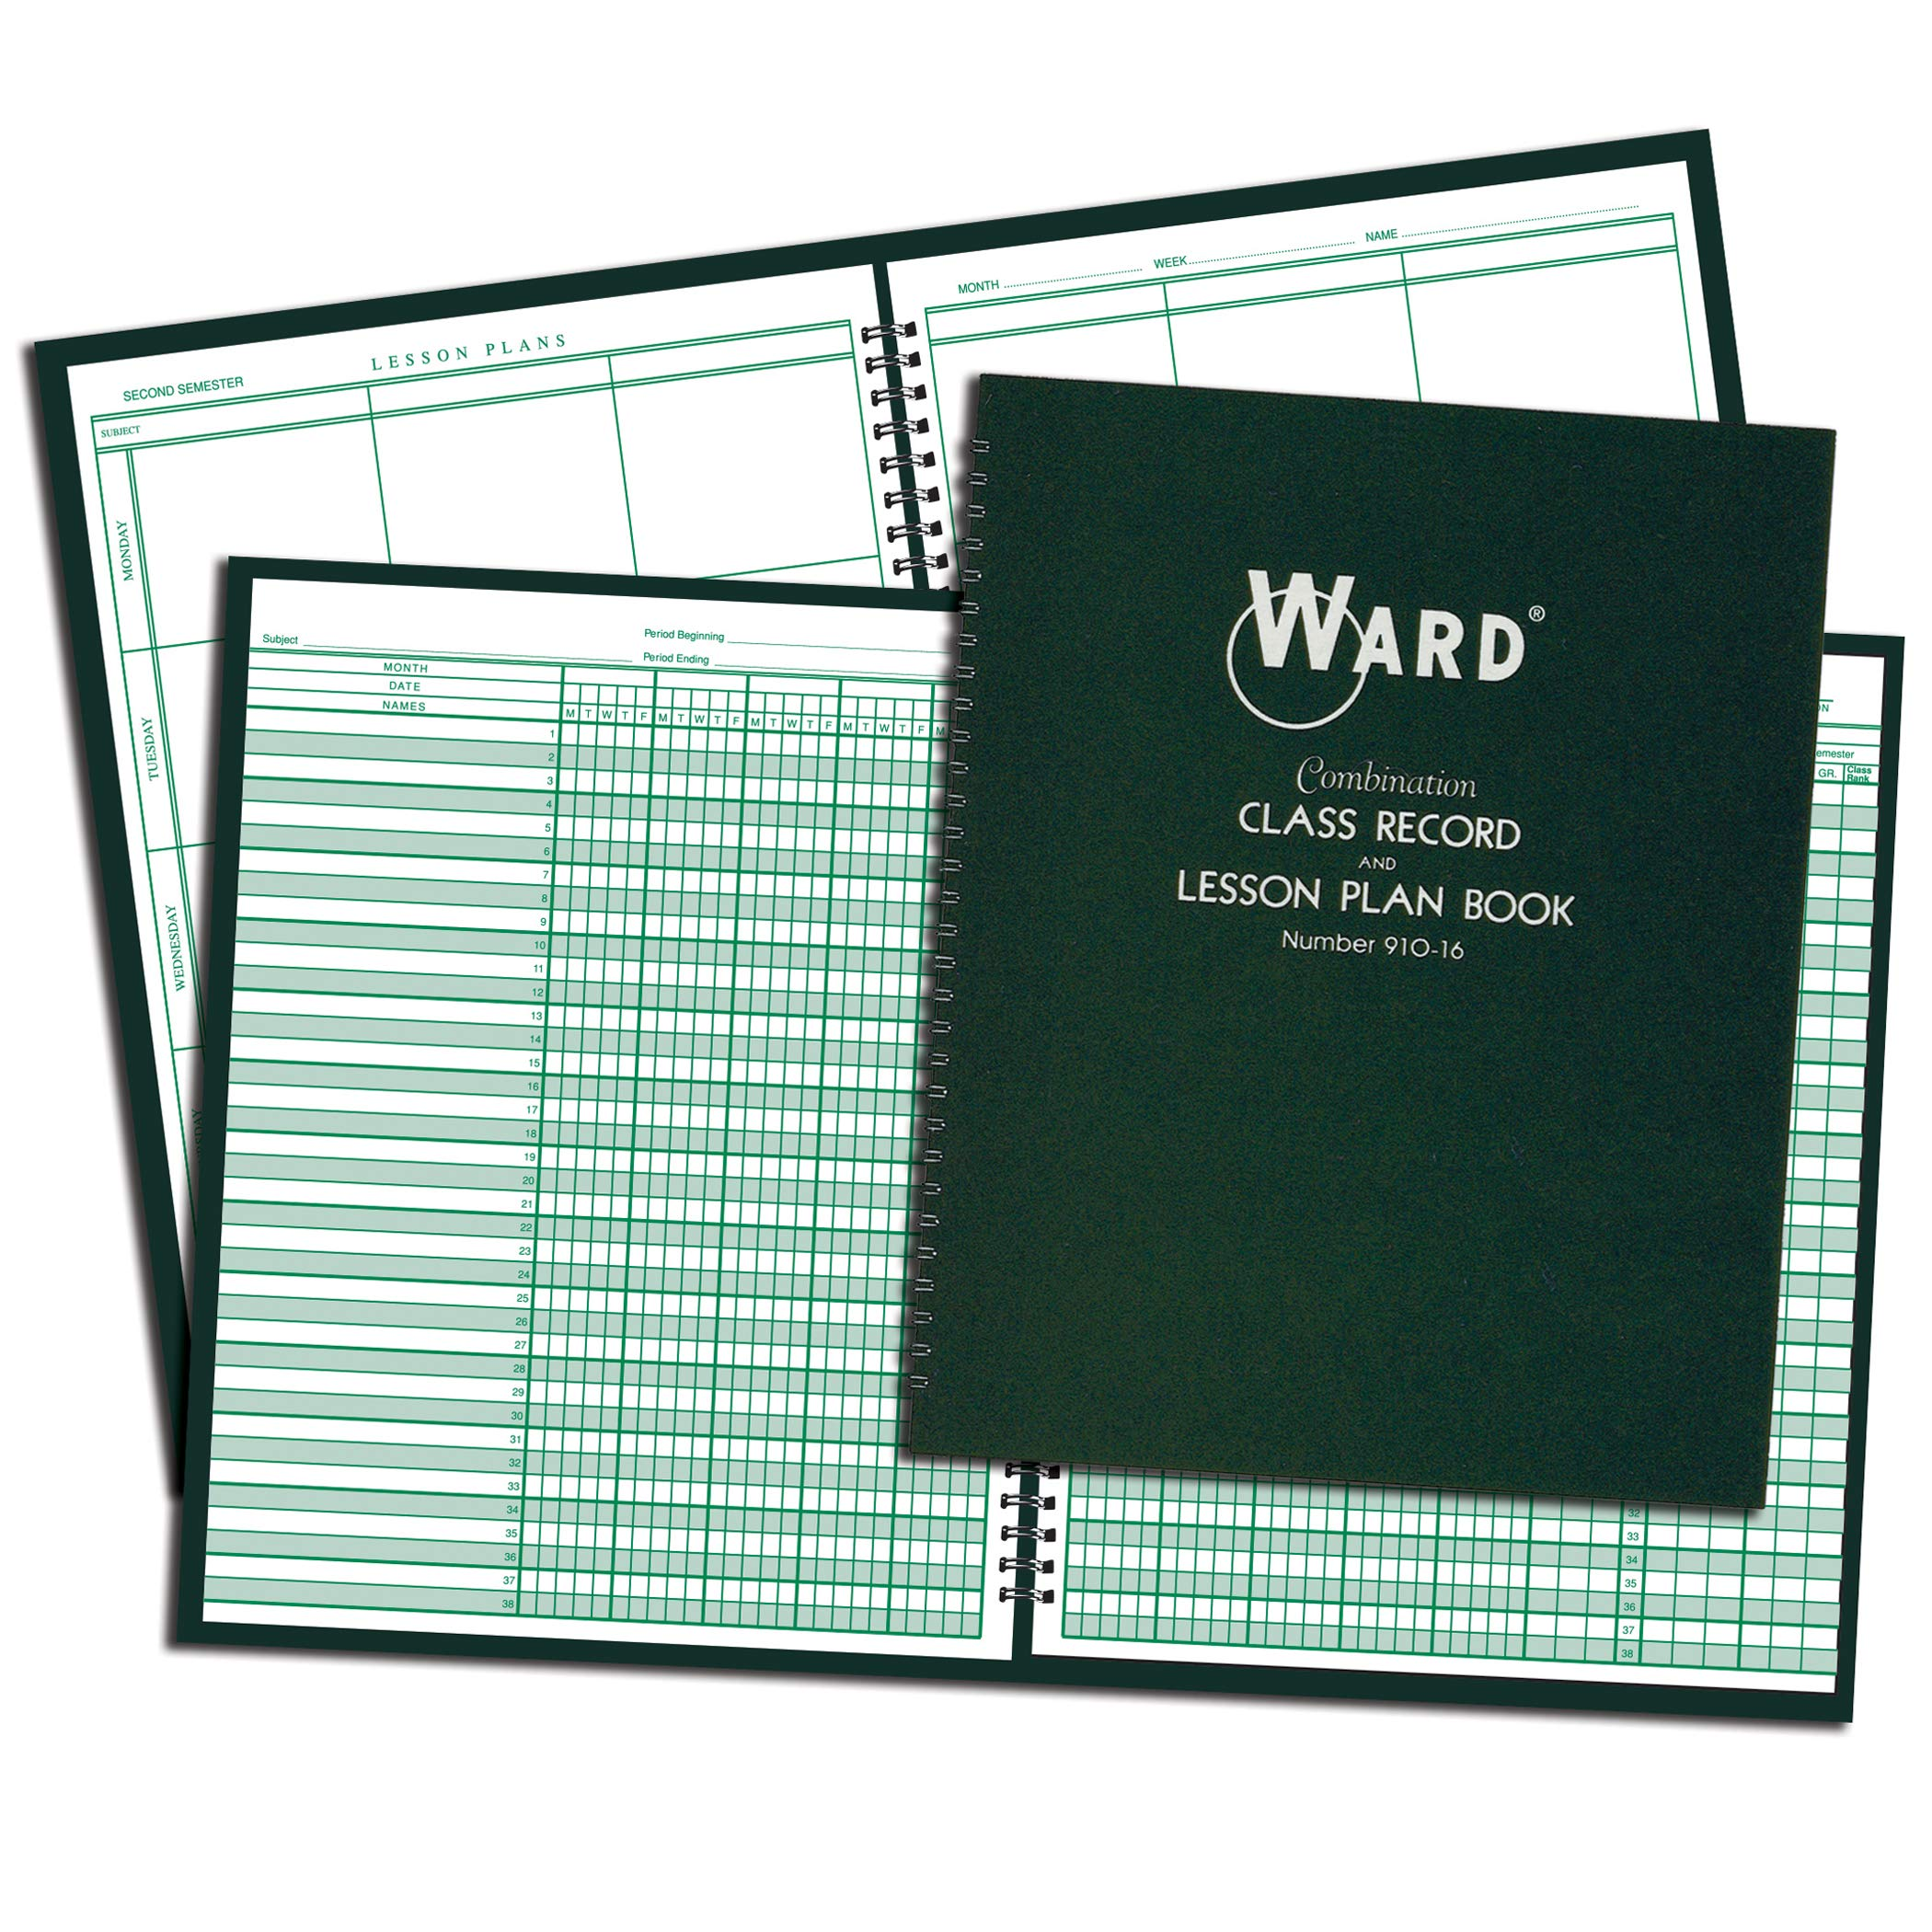 Ward WAR91016BN Combination Record & Lesson Plan Book, 9-10 Week, 6 Periods/Day, Pack of 3